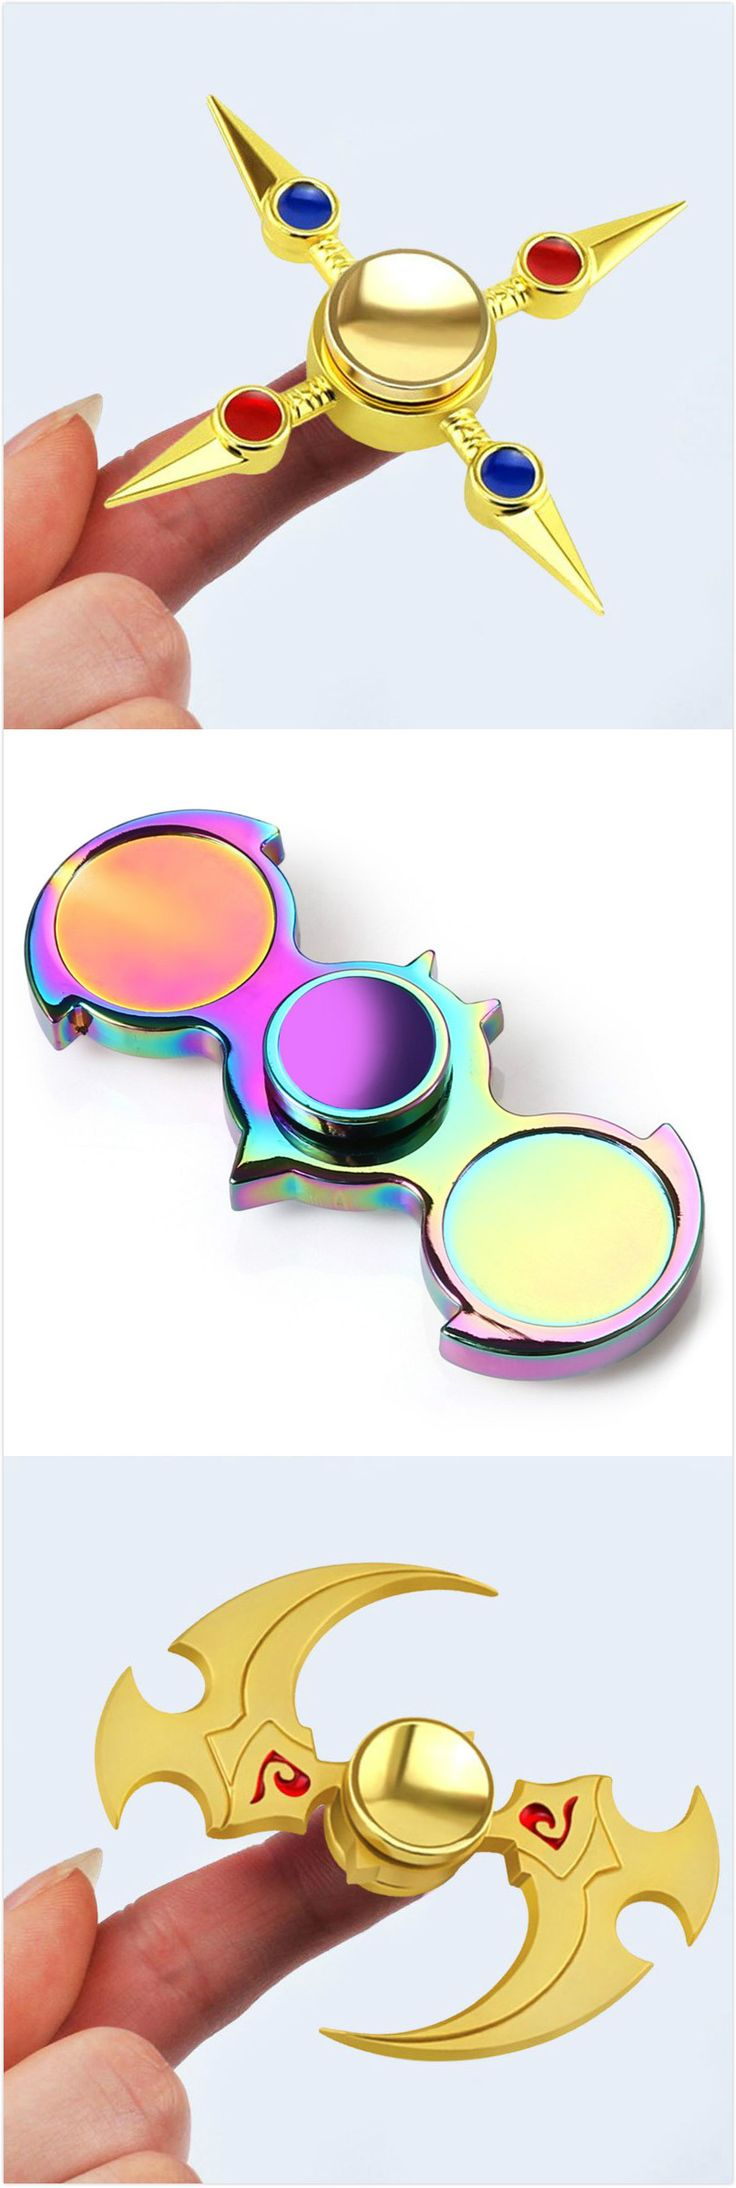 $7.07Cross Shaped Antistress Hand Finger Gyro Spinner